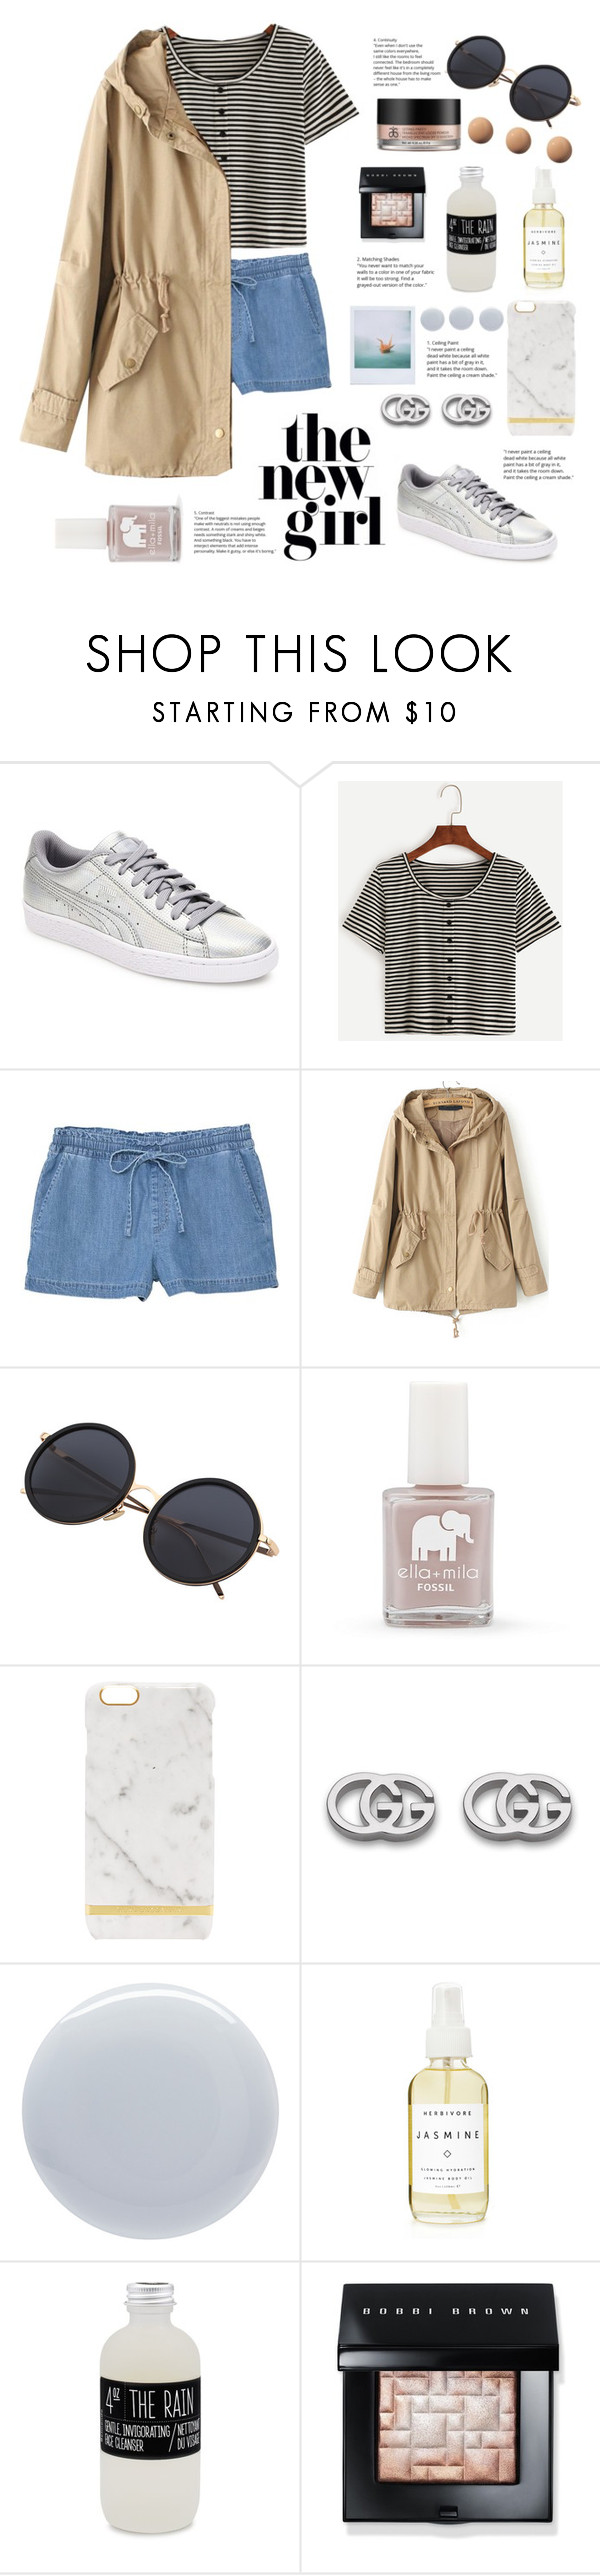 """Newbie"" by belleshines ❤ liked on Polyvore featuring Puma, MANGO, FOSSIL, Gucci, Polaroid, Deborah Lippmann, A Weathered Penny, Belmondo, CC and Bobbi Brown Cosmetics"